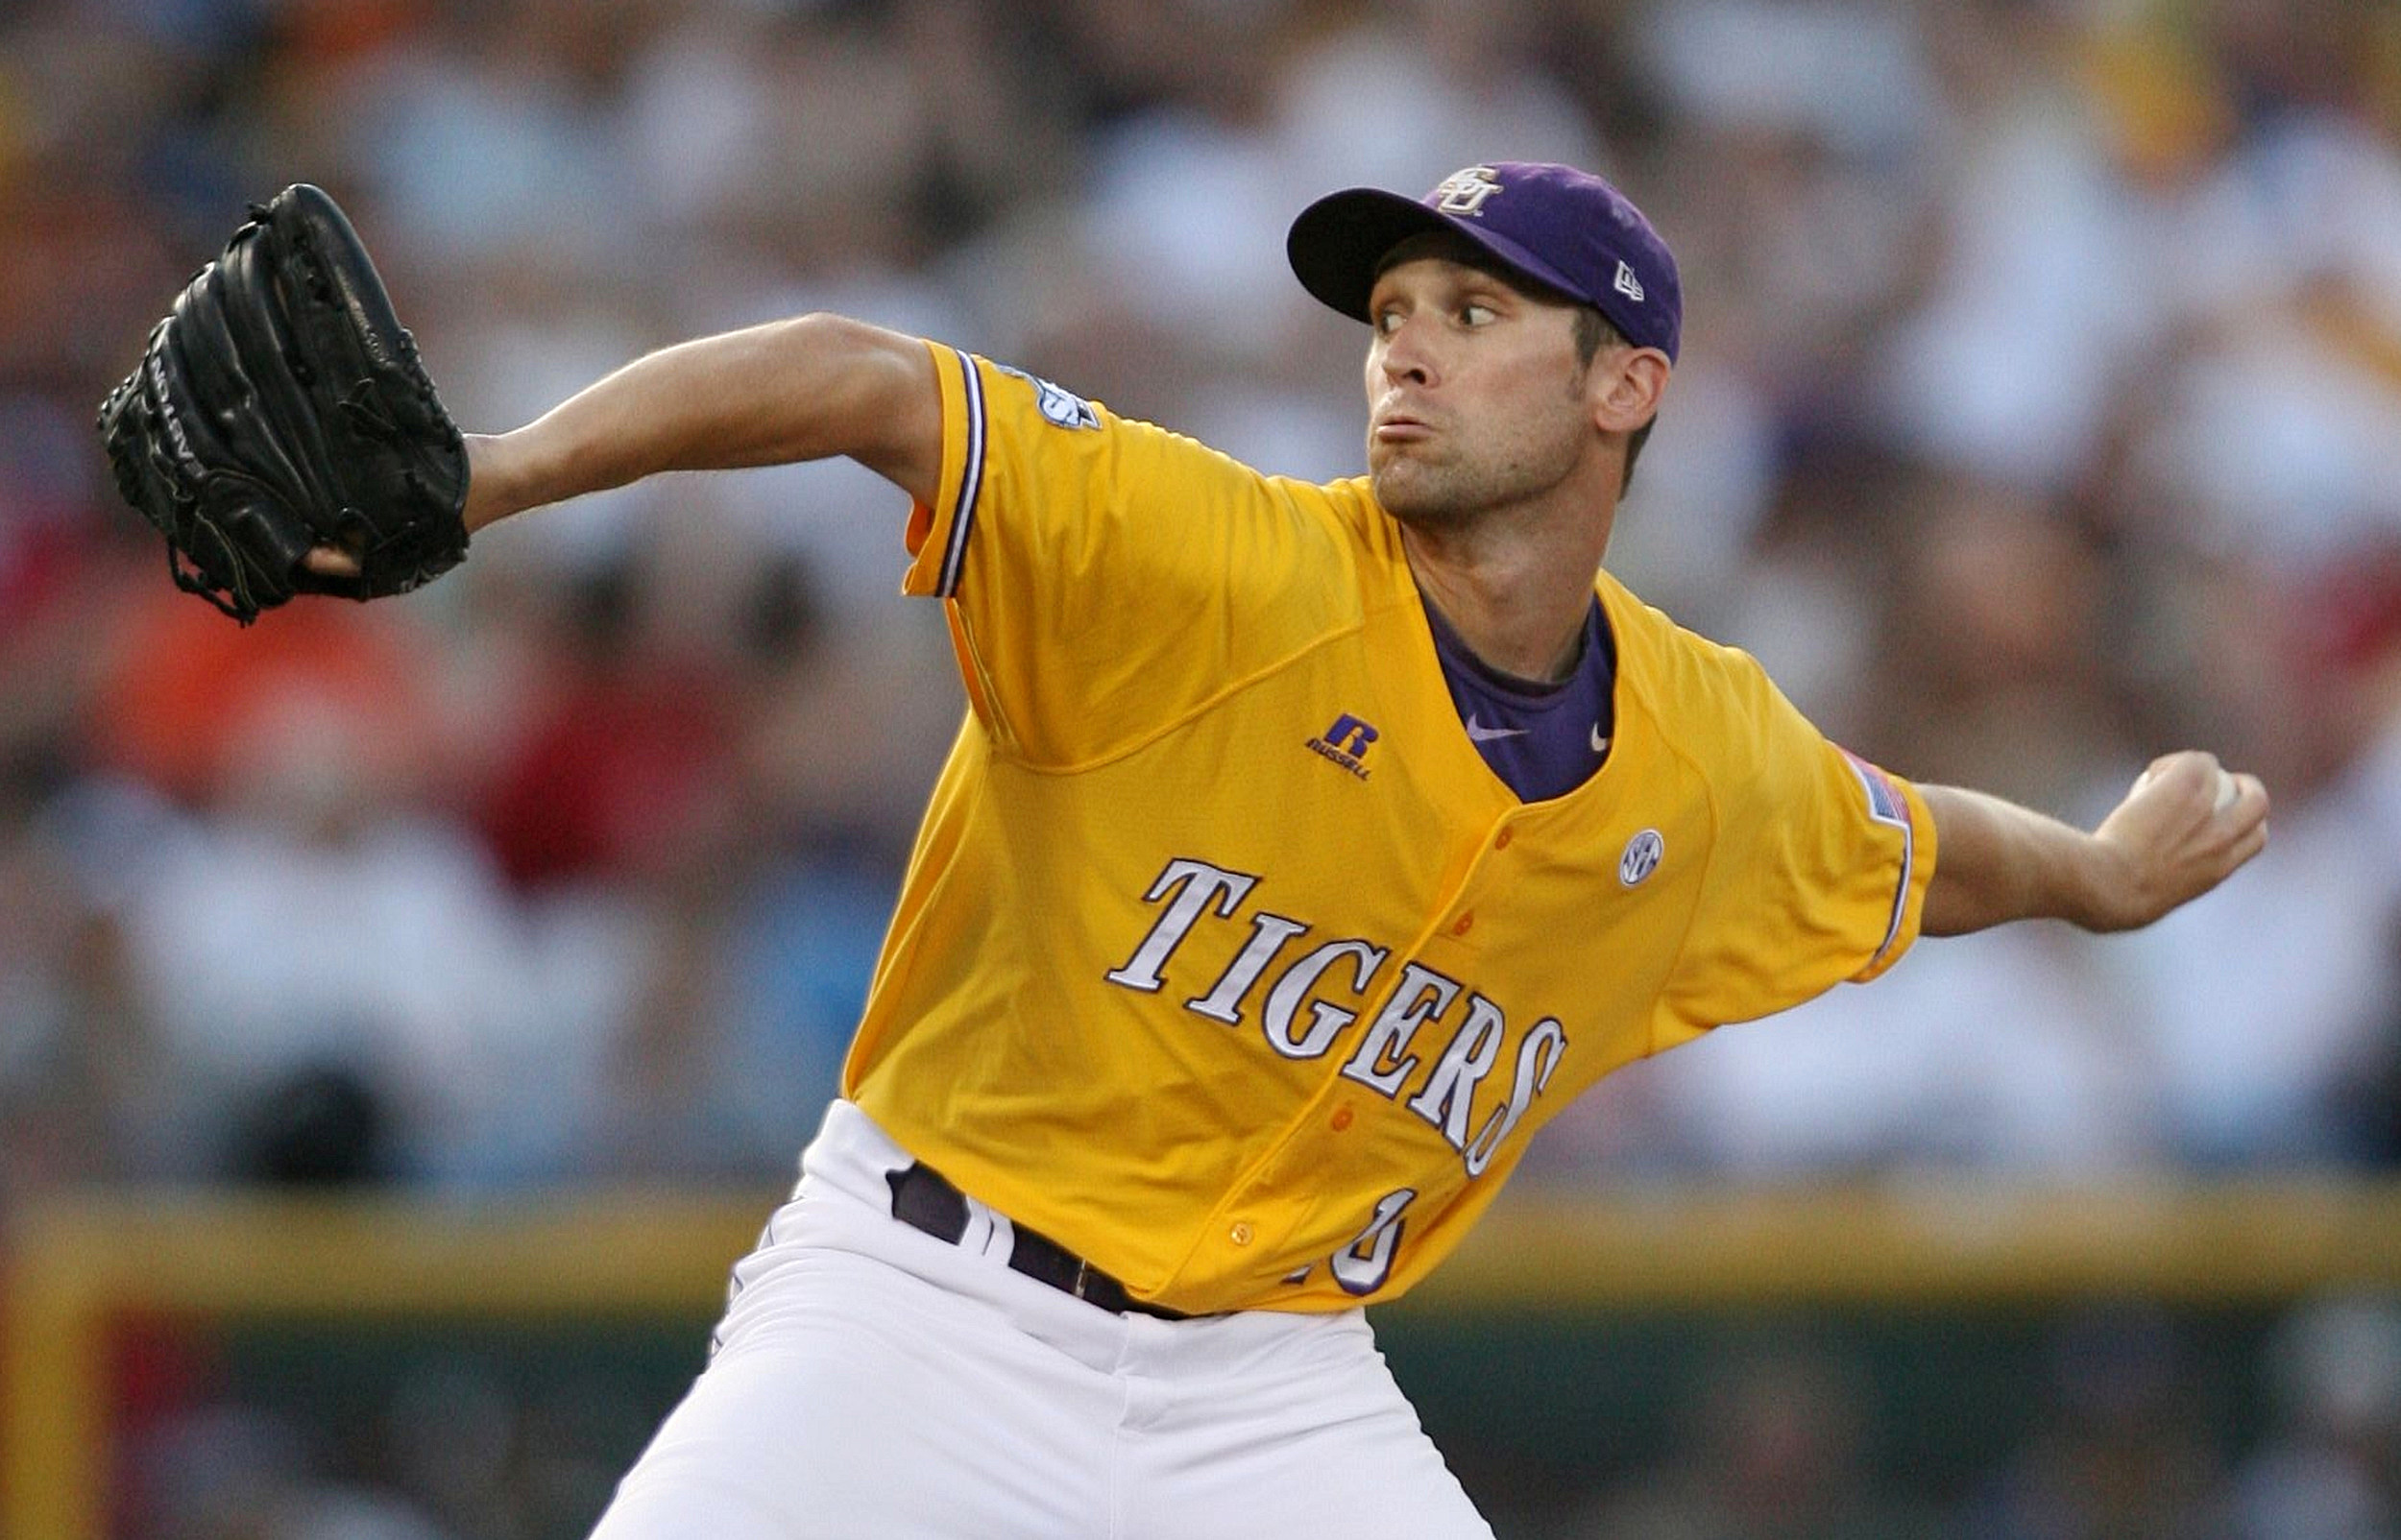 LSU Baseball (Photo by Elsa/Getty Images)